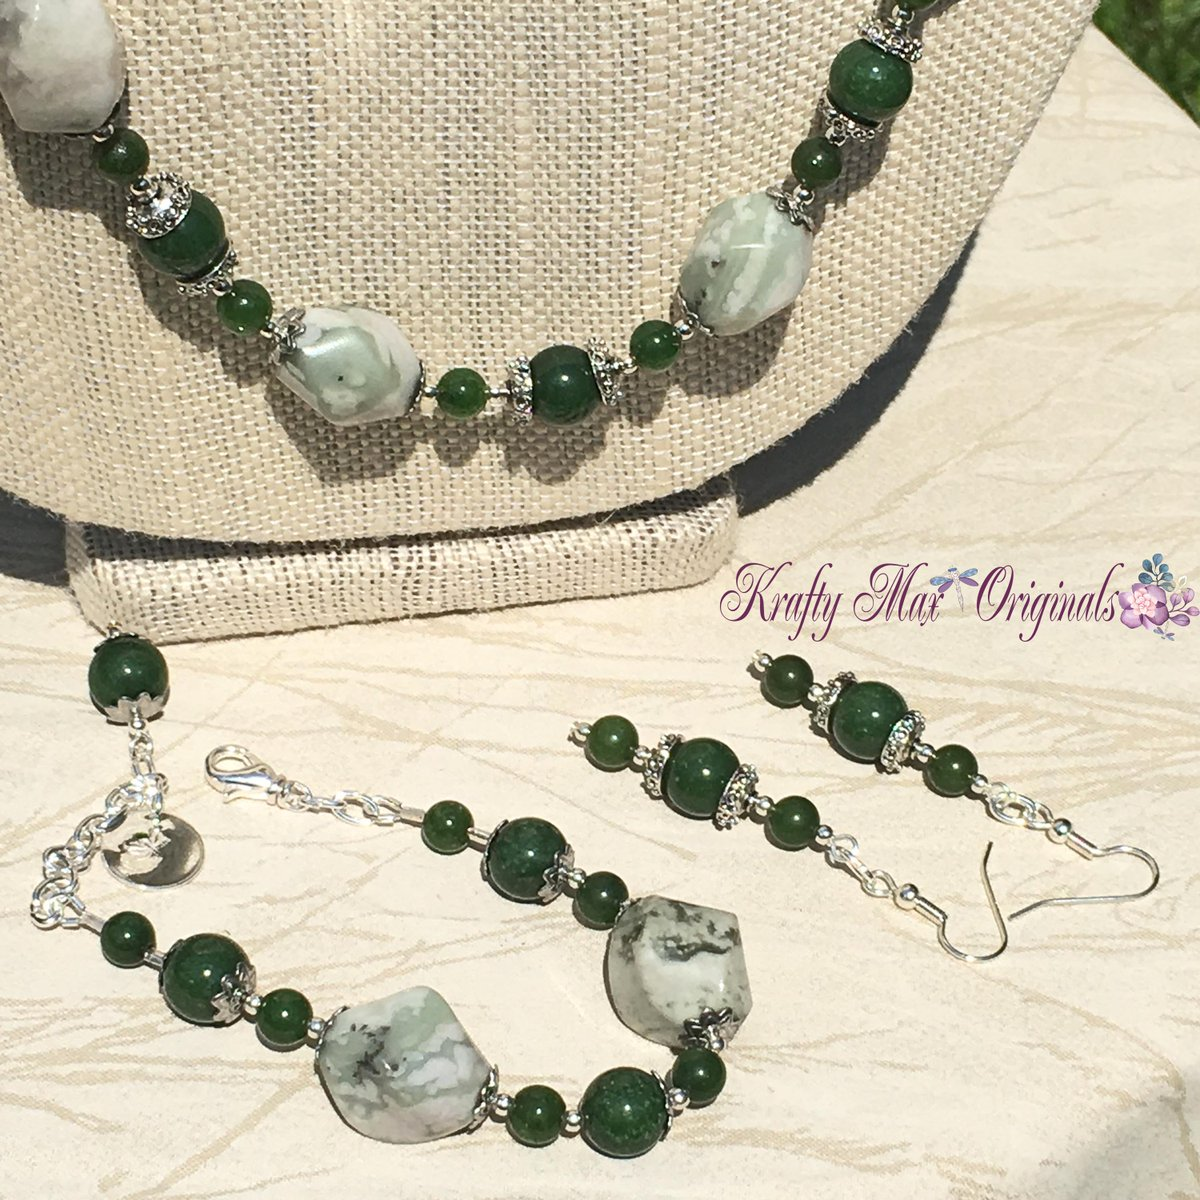 Moss Green and Dyed Jade – 3 Piece Handmade Necklace Set (discounted from $57 down to $21)  #handmade #jewelry #buyhandmade #handmadelove #handcrafted #kraftymax #kmax #discount #sale #bargain #save #clearance